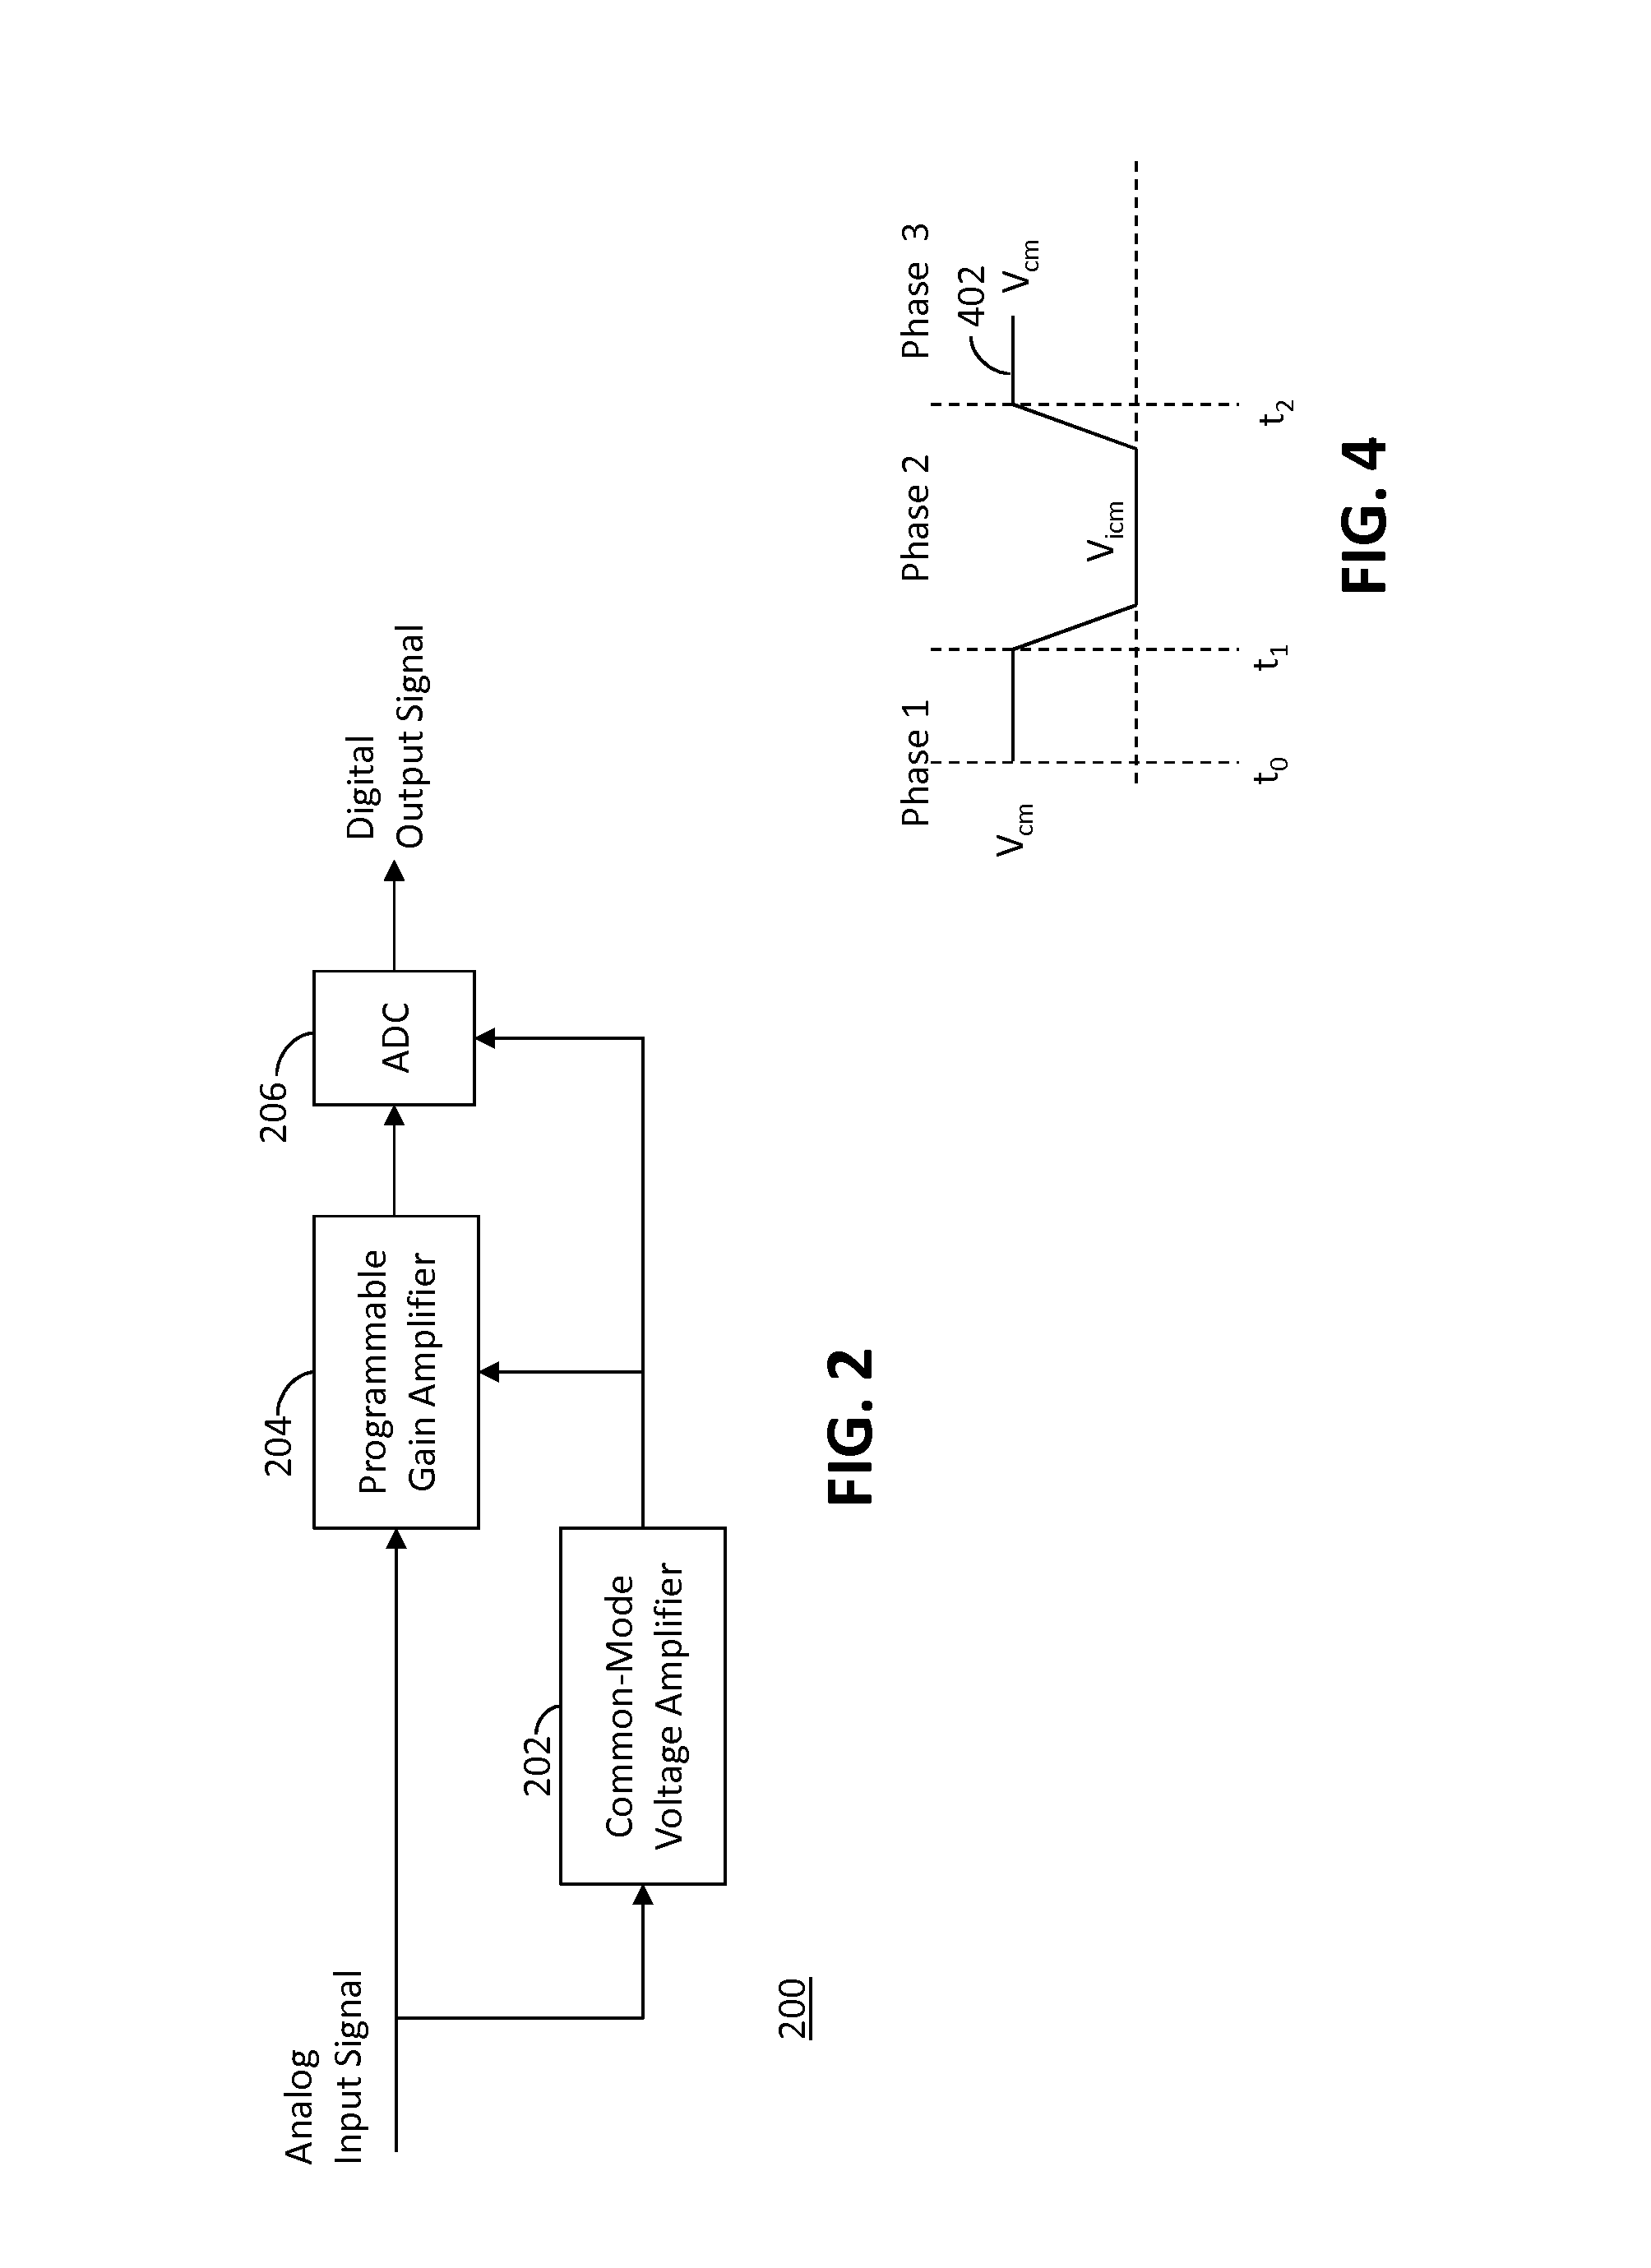 Patent Us8456337 System To Interface Analog Digital Converters Amplifier Circuit With Common Mode Signal Input Amplifiercircuit Voltage Images5 Drawing